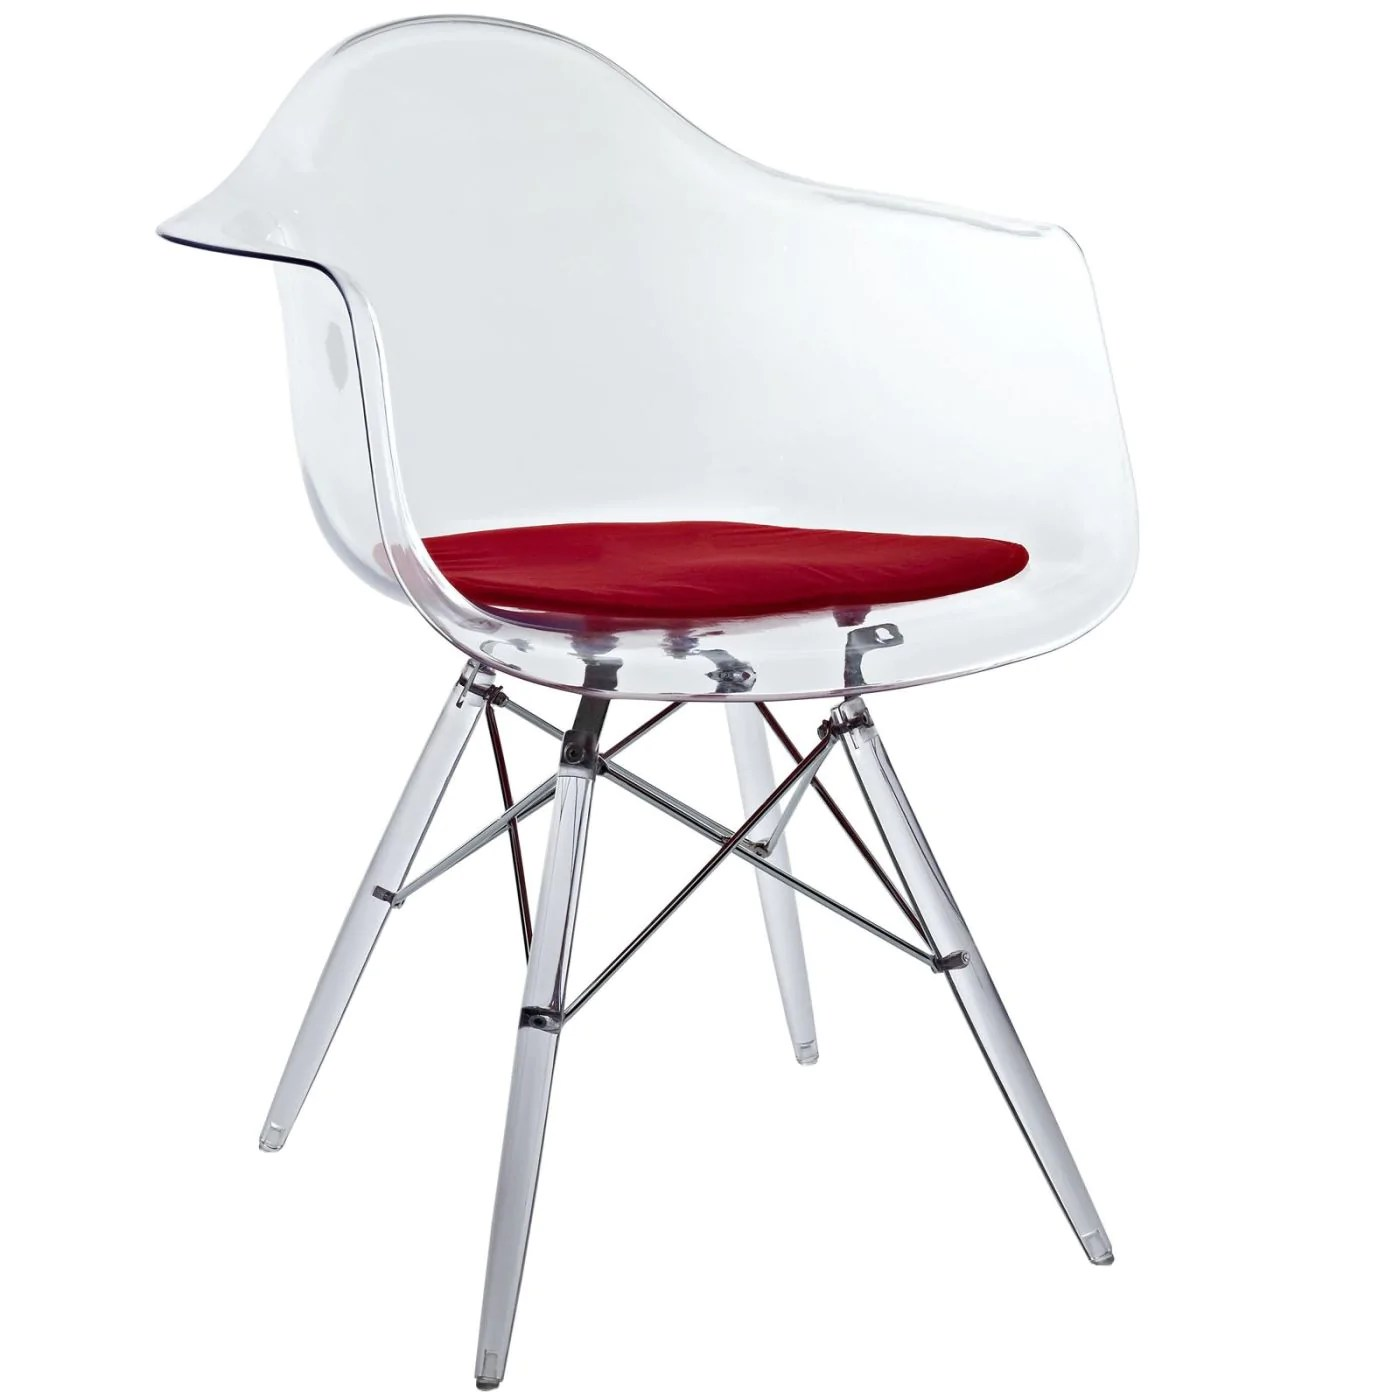 Plastic Clear Chair Modway Pyramid Mid Century Modern Dining Armchair Clear Molded Plastic Eei 221 Red Only 129 75 At Contemporary Furniture Warehouse